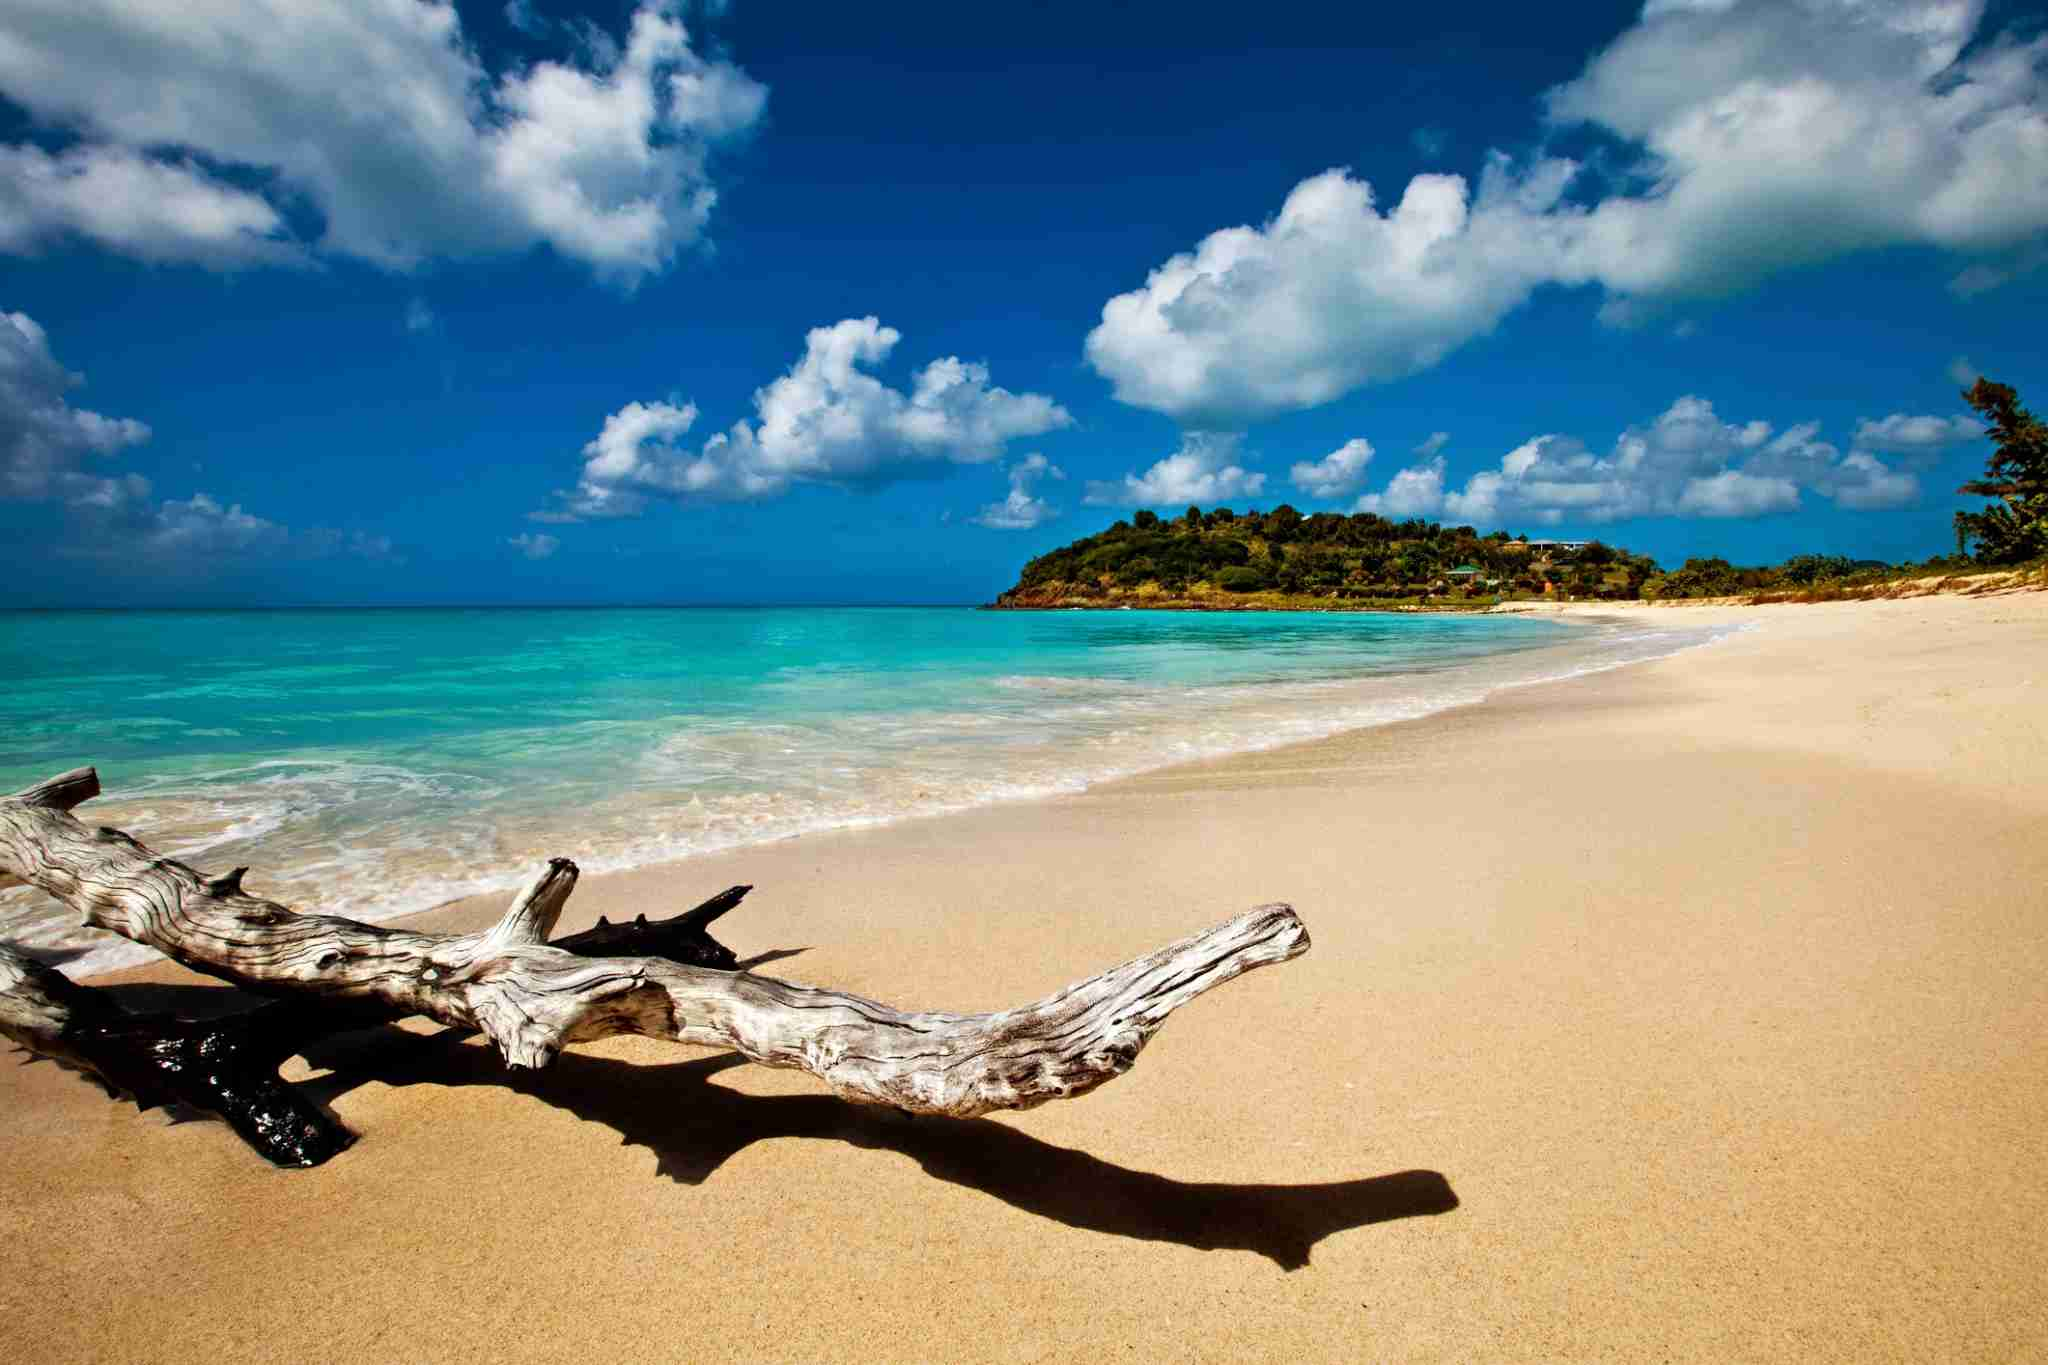 Ffryers Bay in Antigua. Image by Ian Rogers Photography / Getty Images.